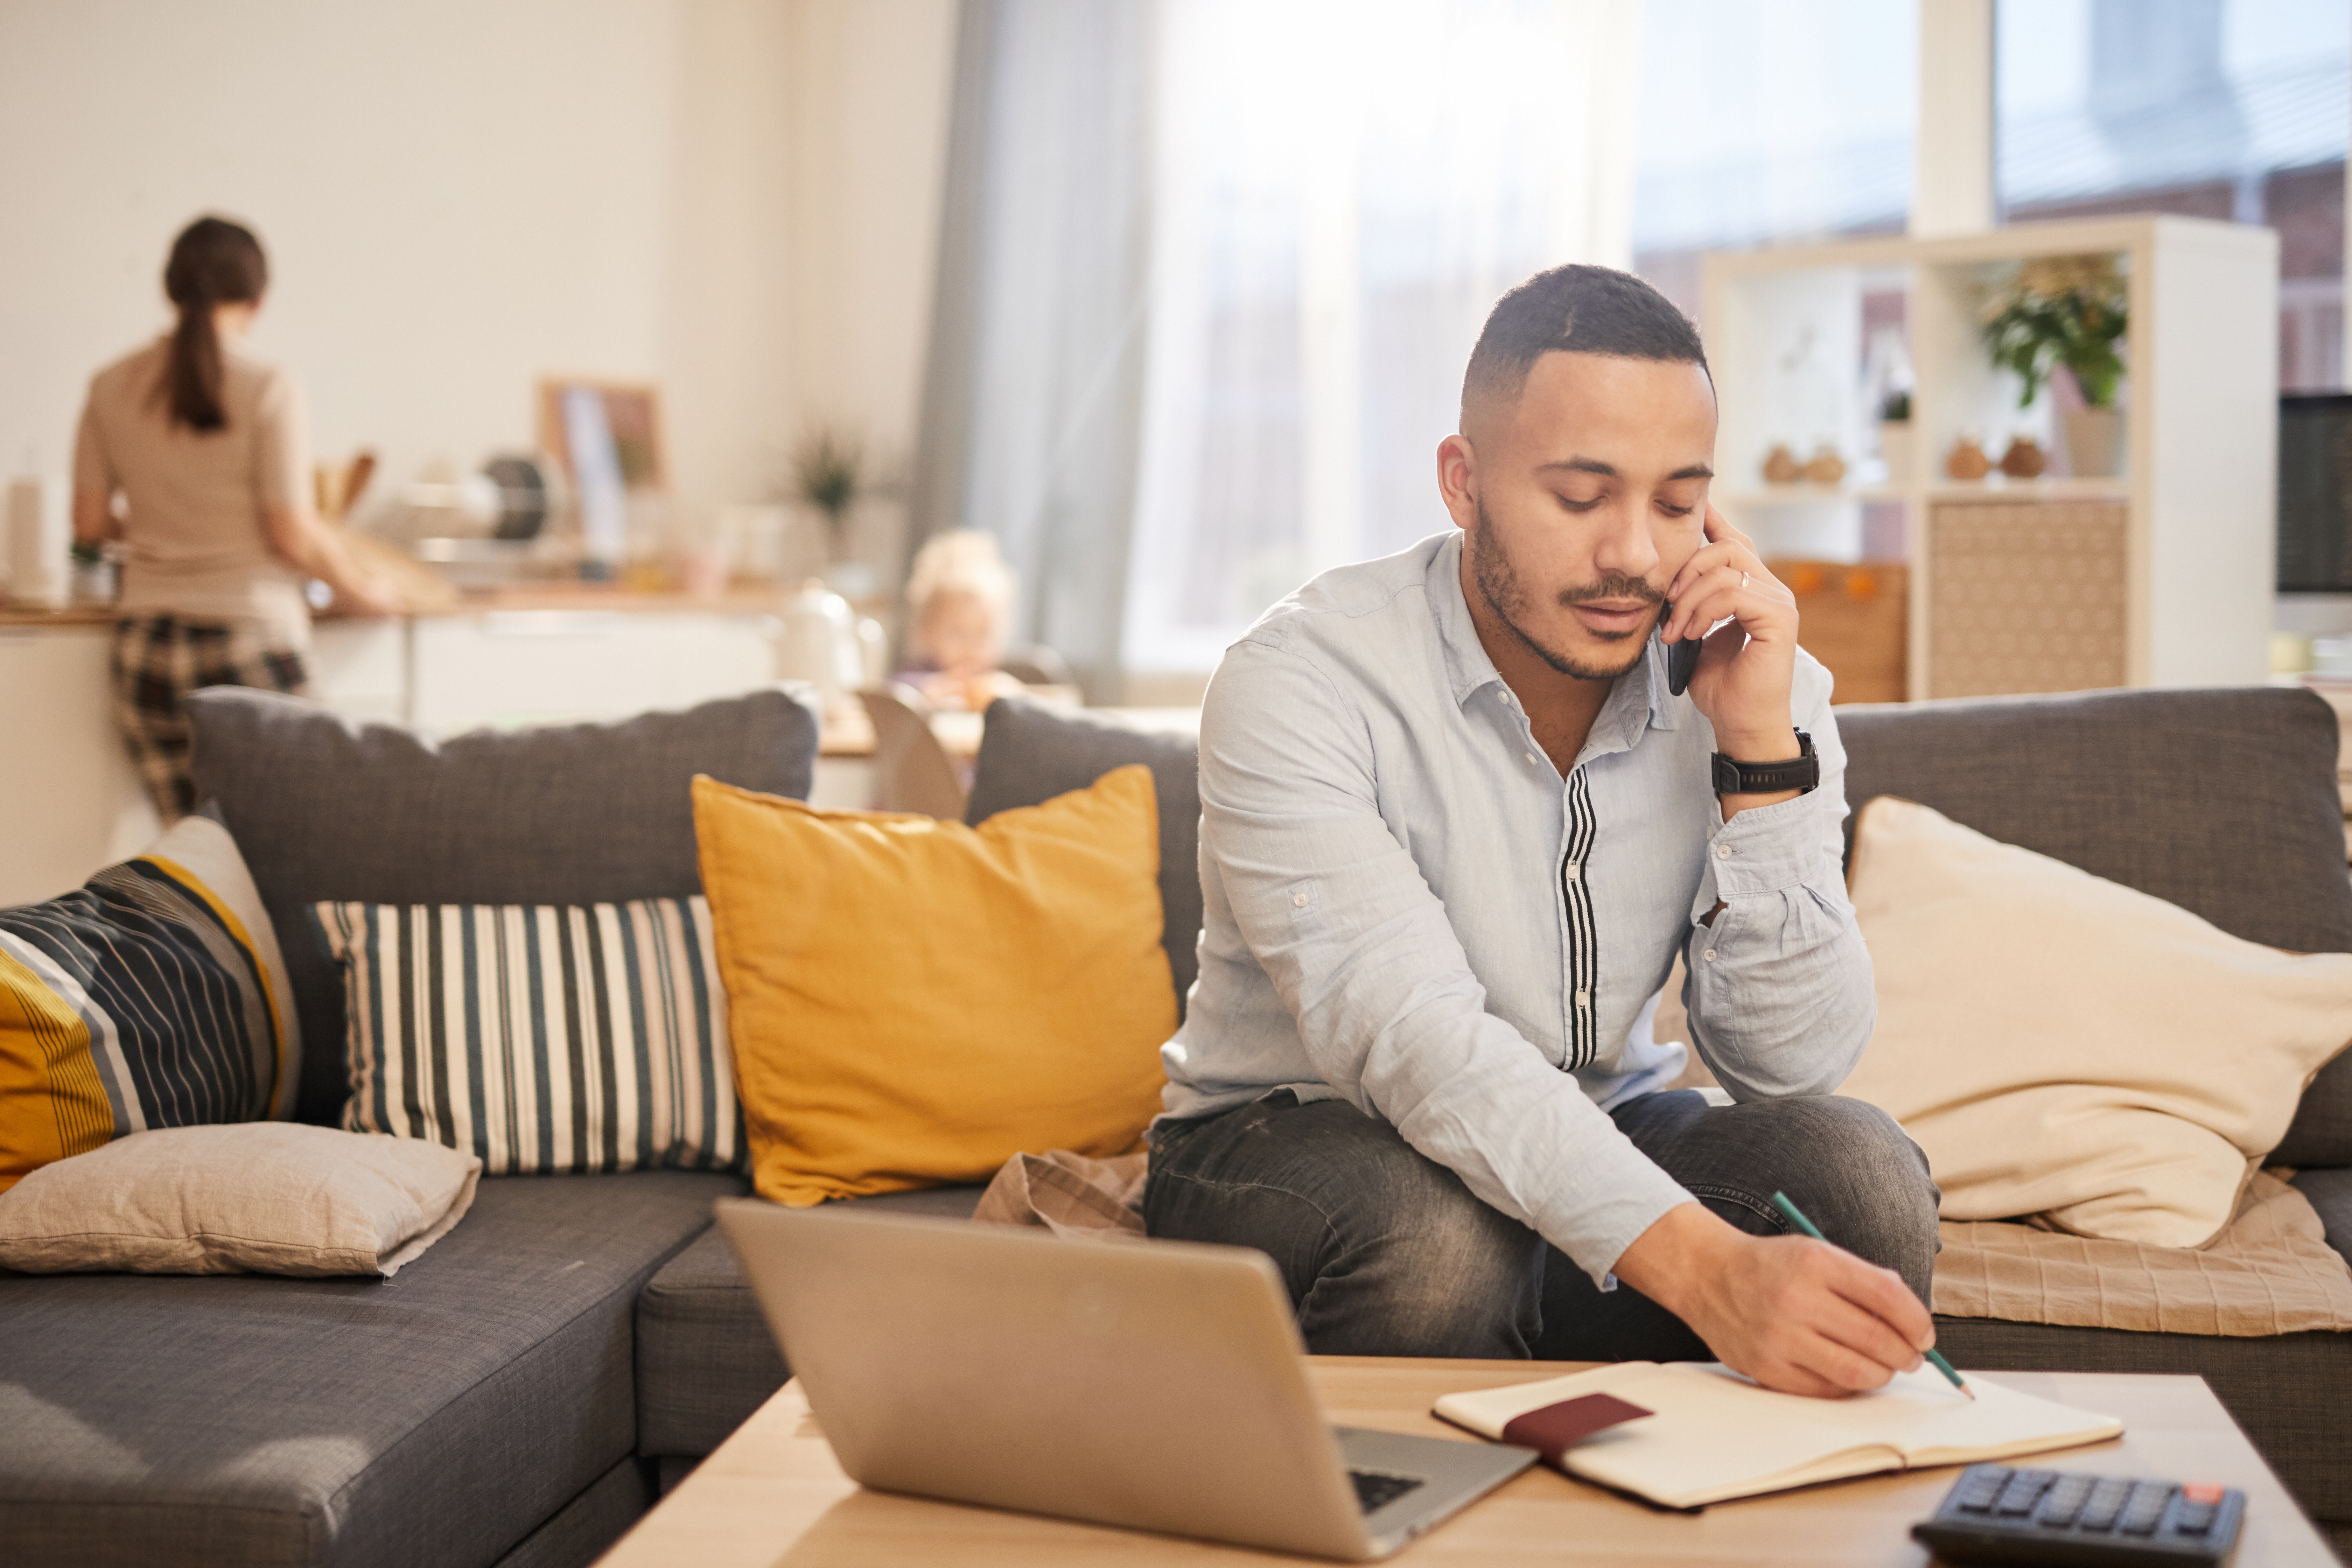 man speaking by phone while working from home in cozy interior, copy space